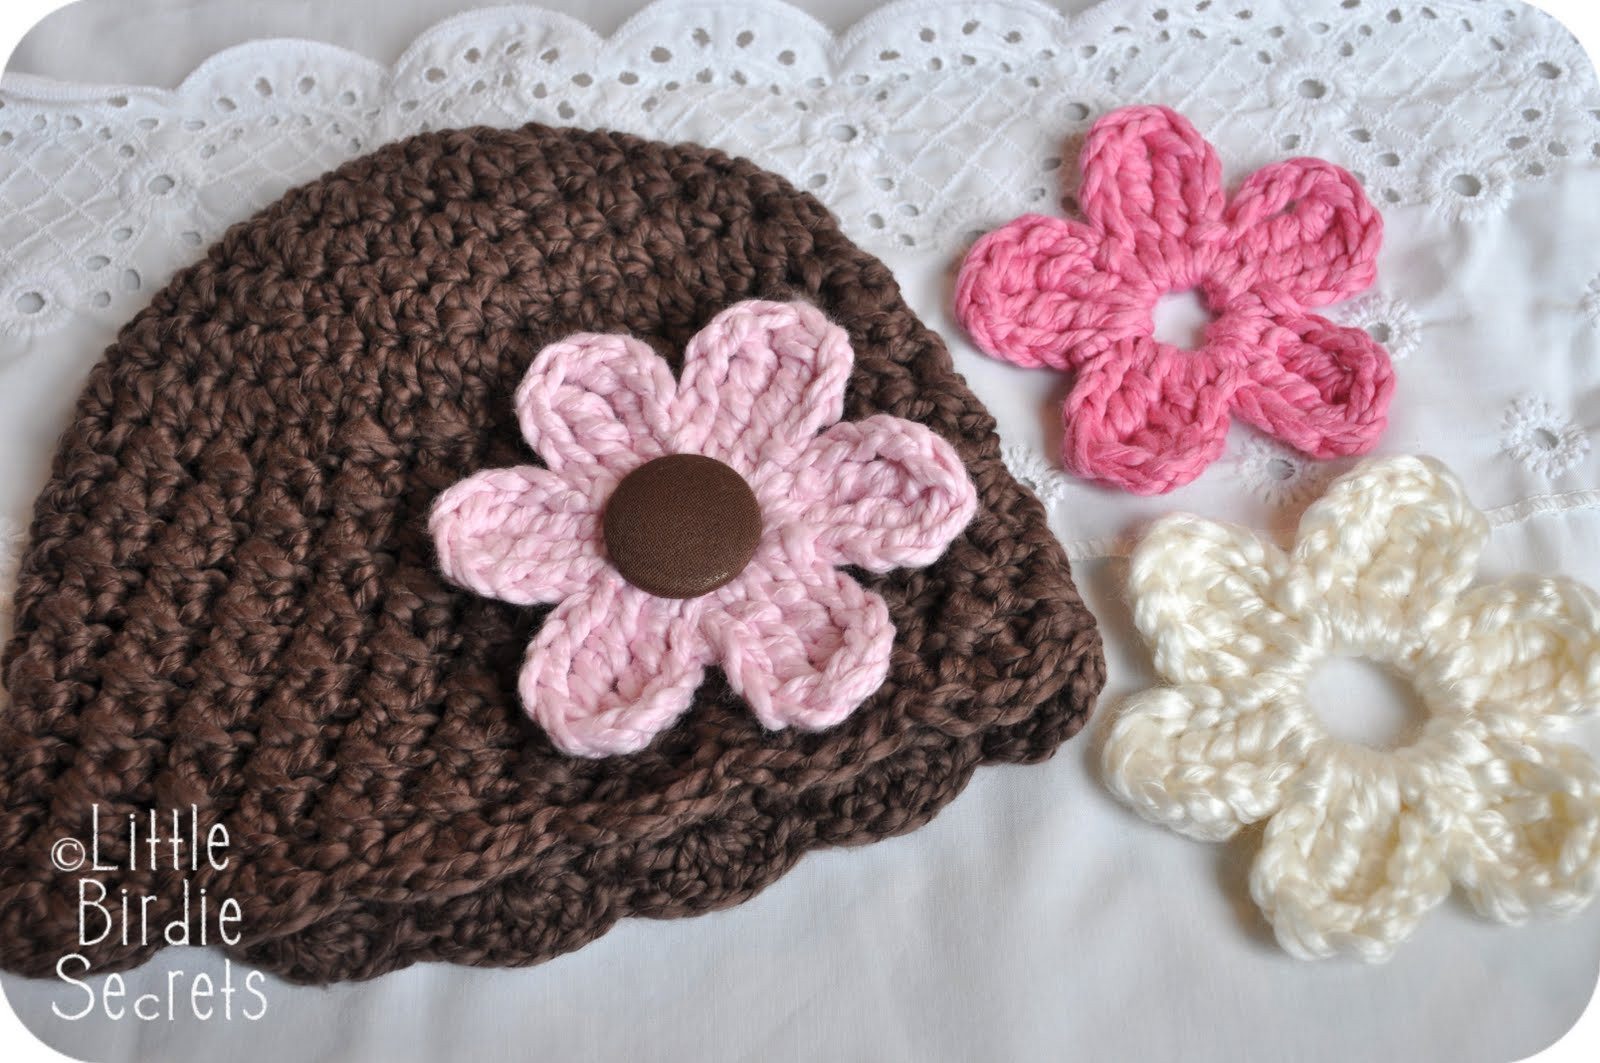 New New Baby Hat and Bootie Patterns In the Shop Plus A Free Crochet Flowers for Hats Free Patterns Of Luxury 25 Best Ideas About Crochet Hats On Pinterest Crochet Flowers for Hats Free Patterns